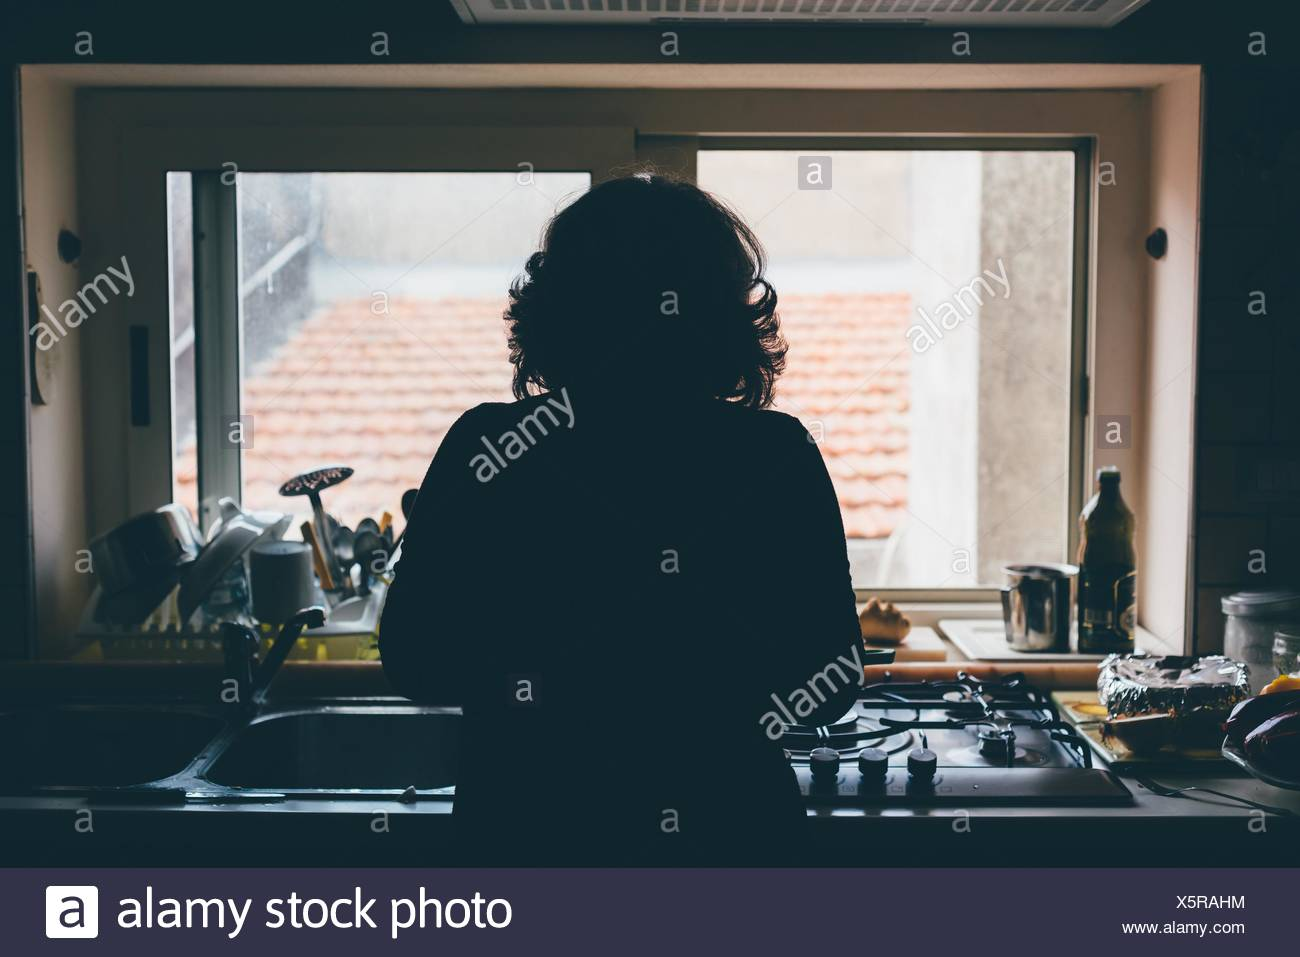 Rear silhouetted view of woman standing in front of kitchen sink - Stock Image